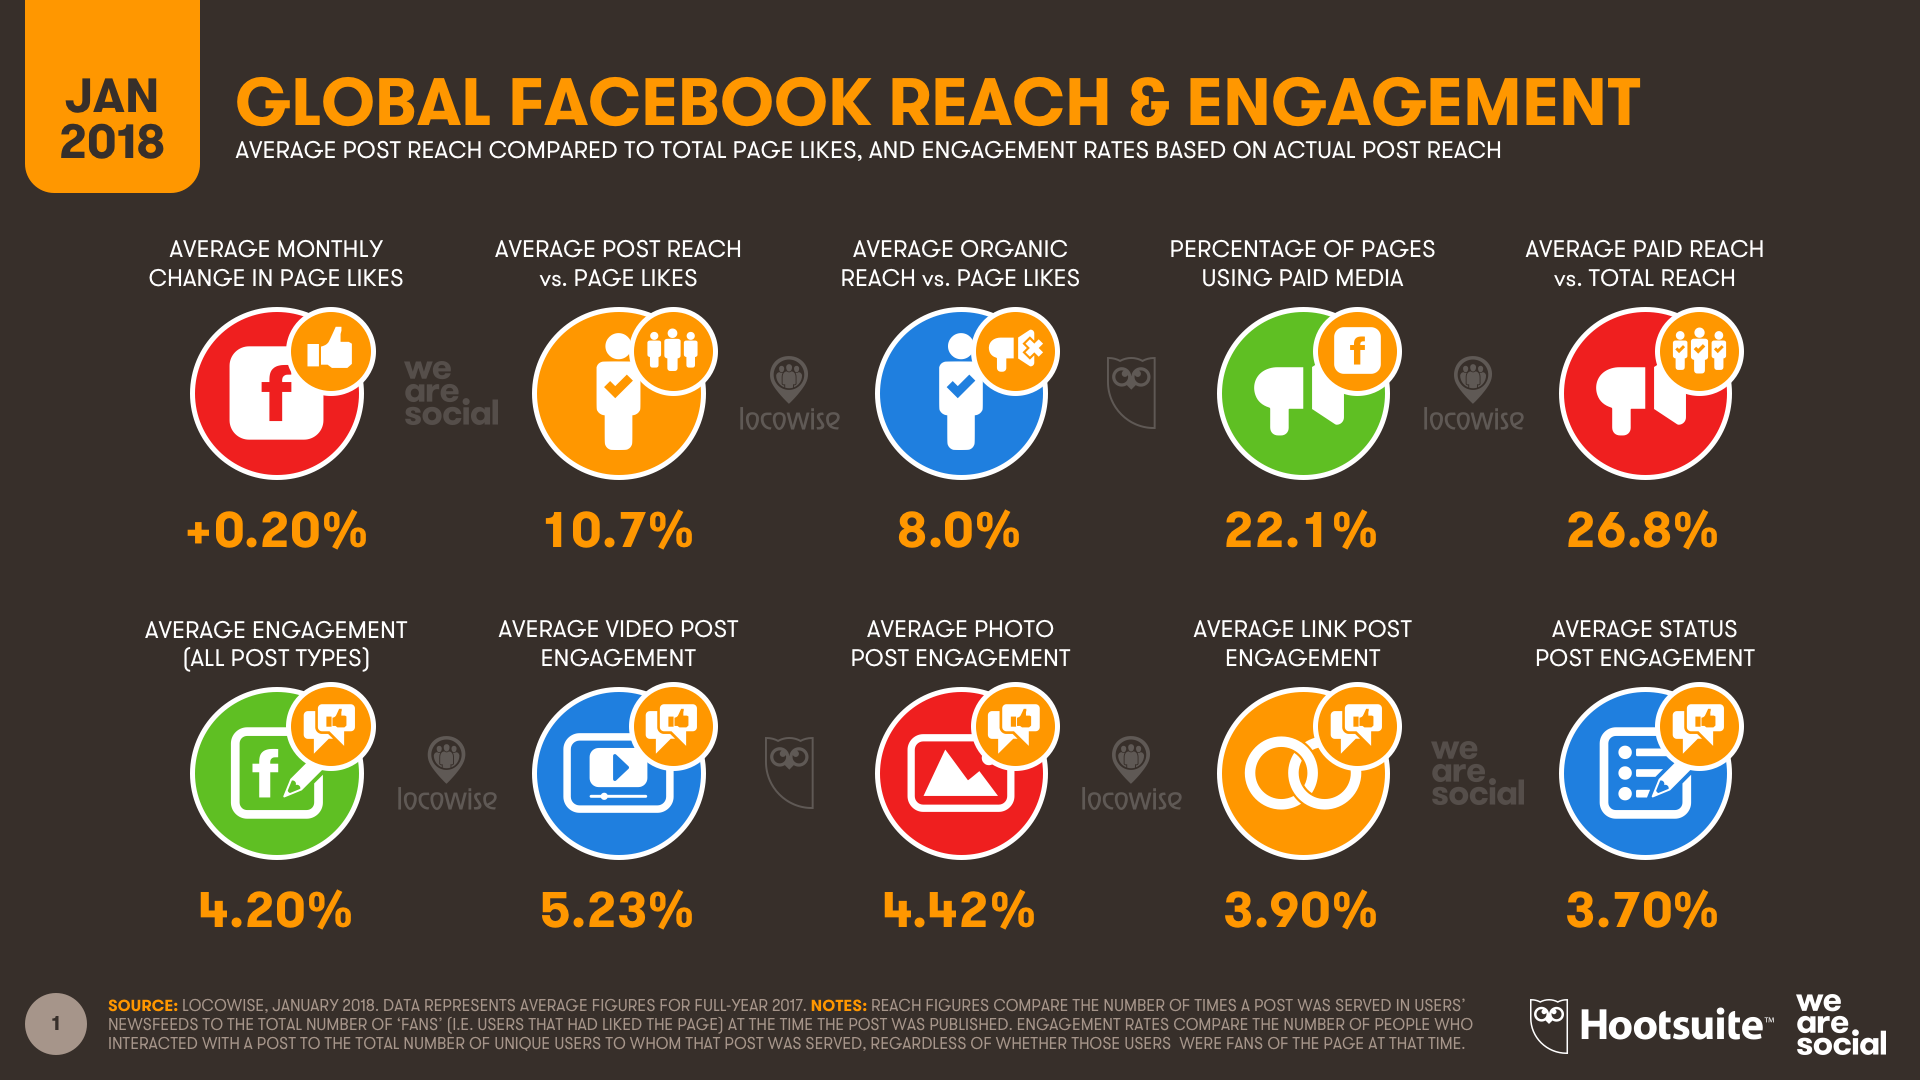 Facebook reach and engagement - global benchmarks